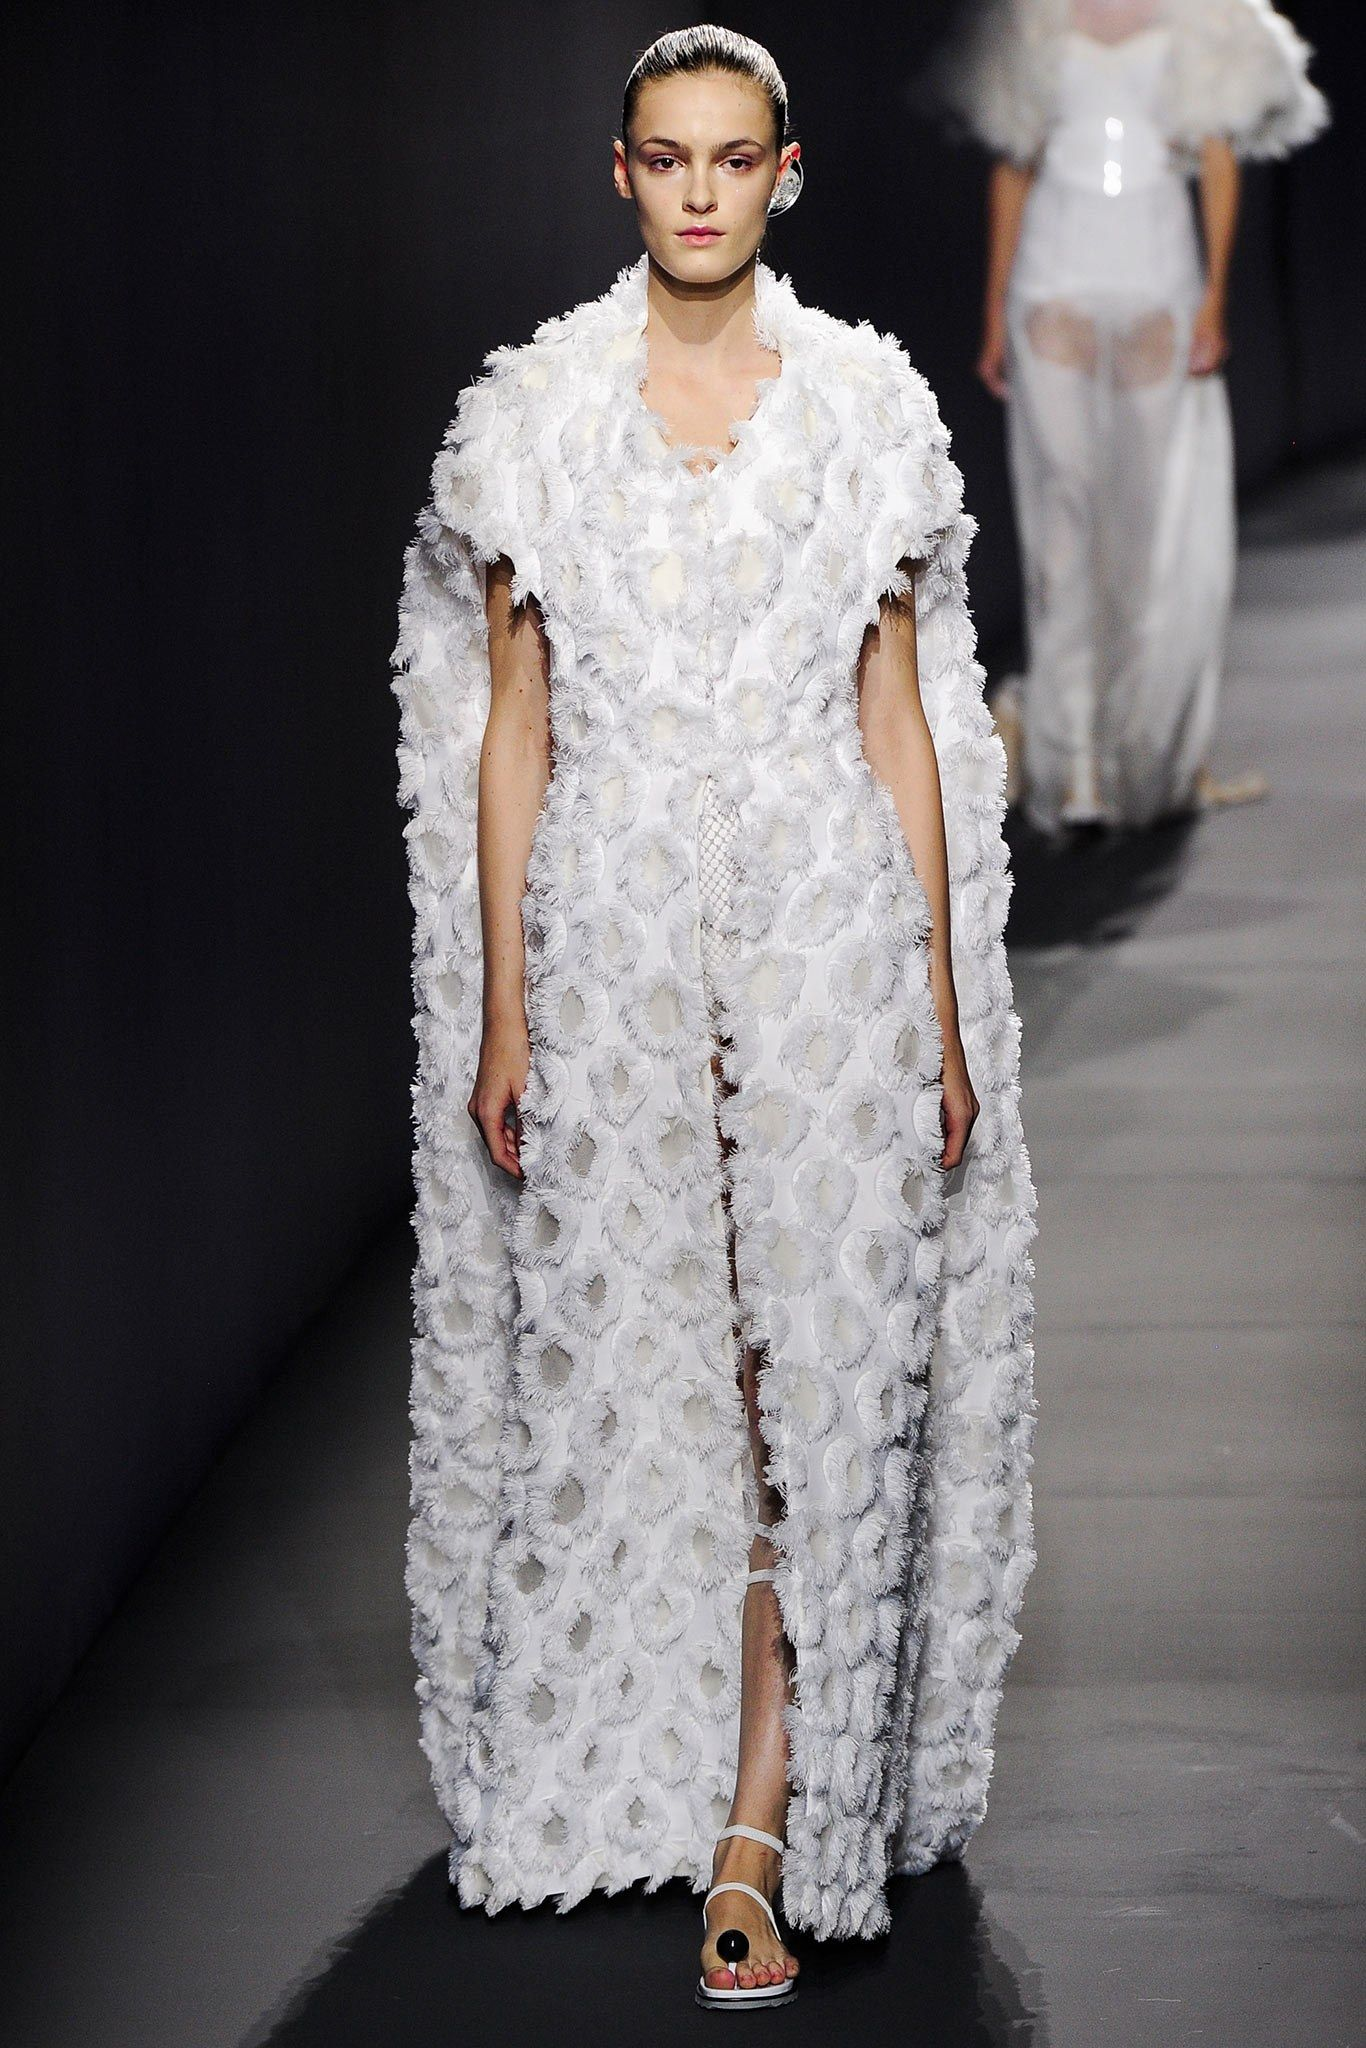 Vionnet Spring 2015 Ready-to-Wear Fashion Show - Kremi Otashliyska (Elite)